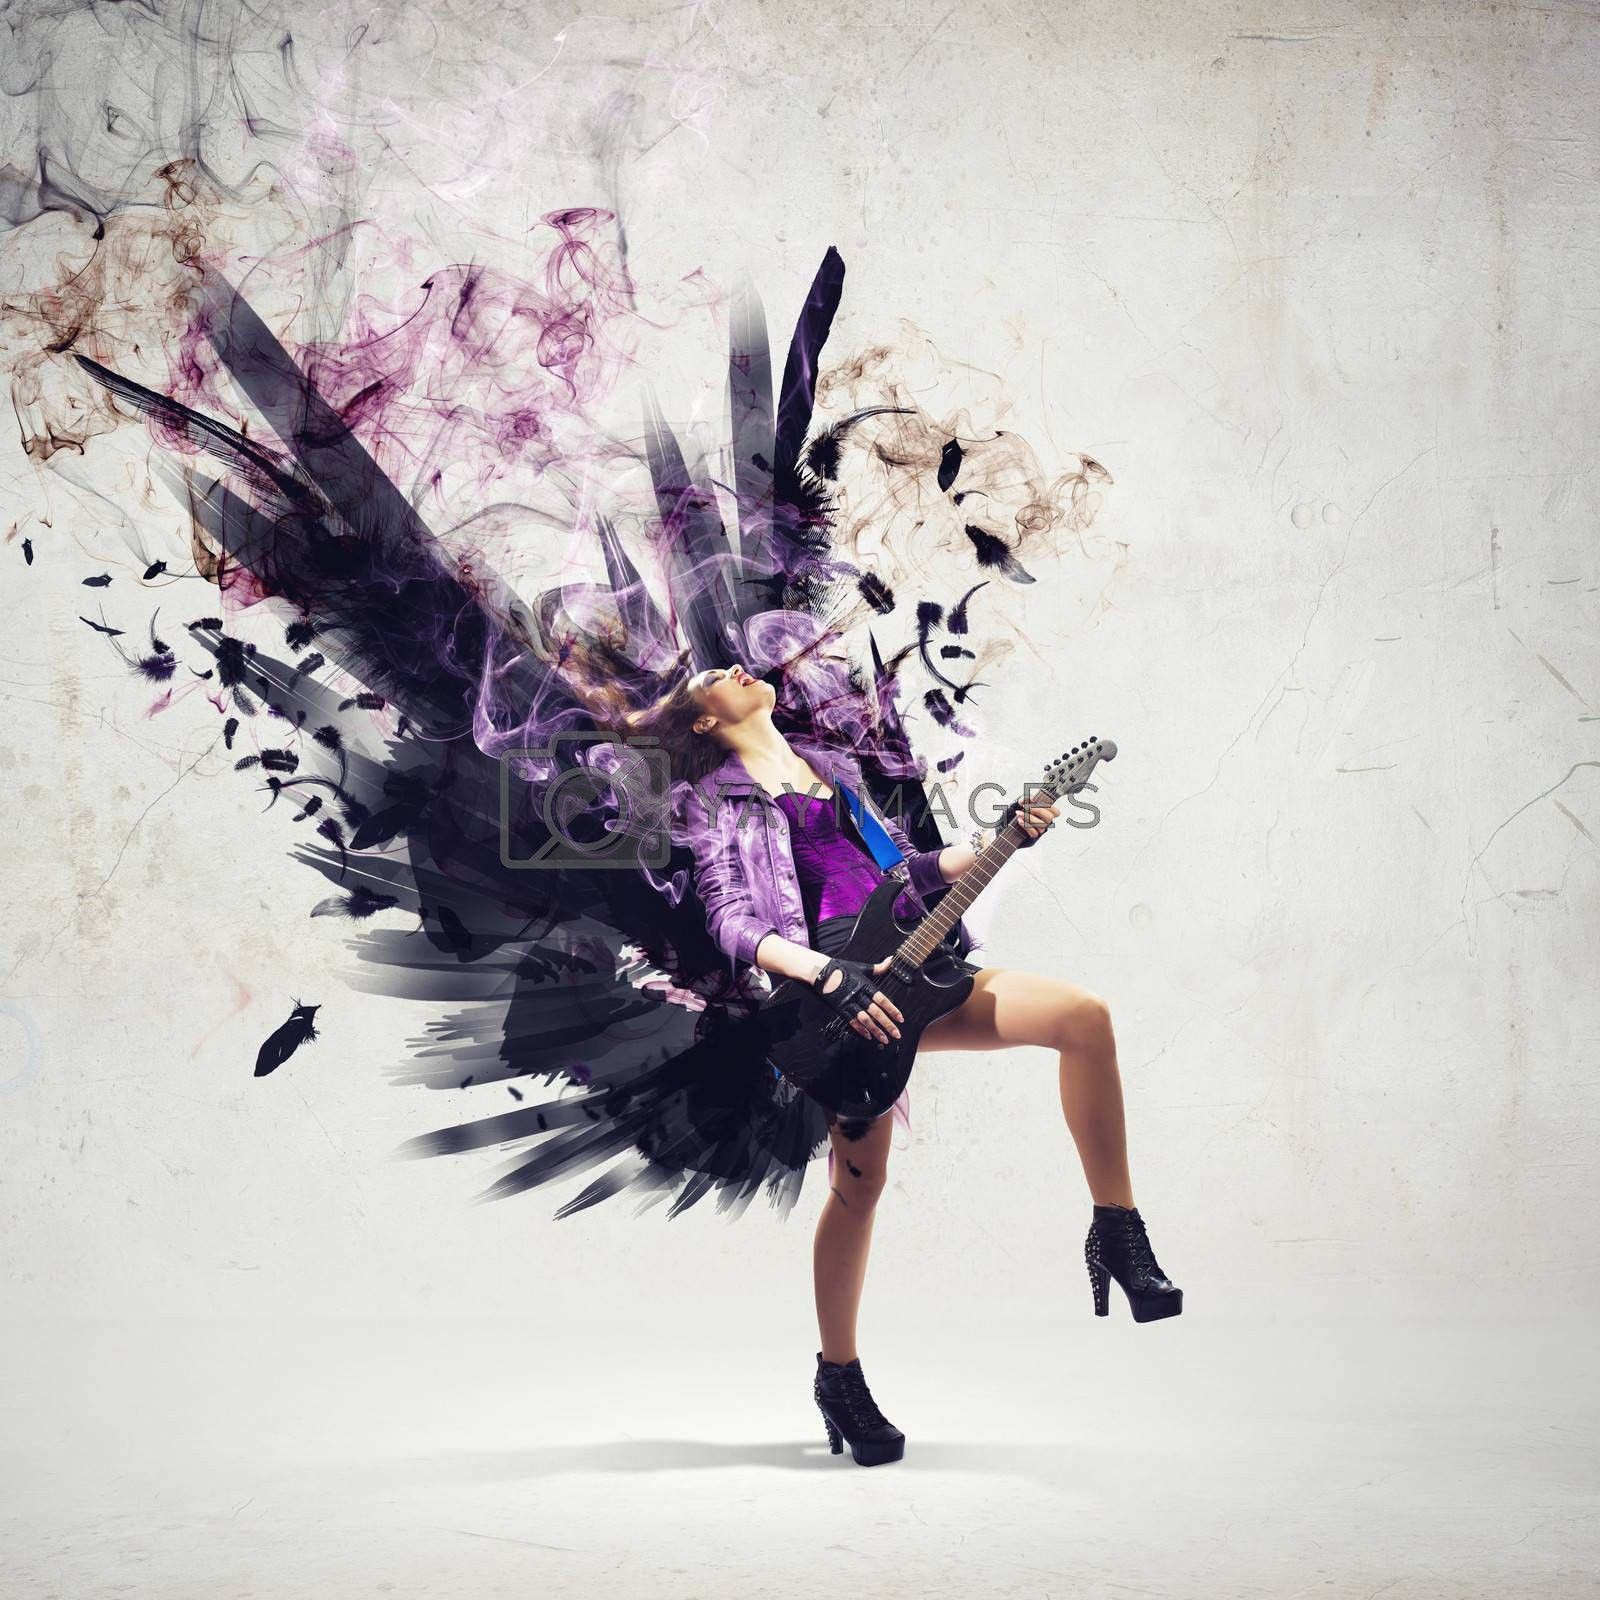 Rock passionate girl with black wings by Sergey Nivens